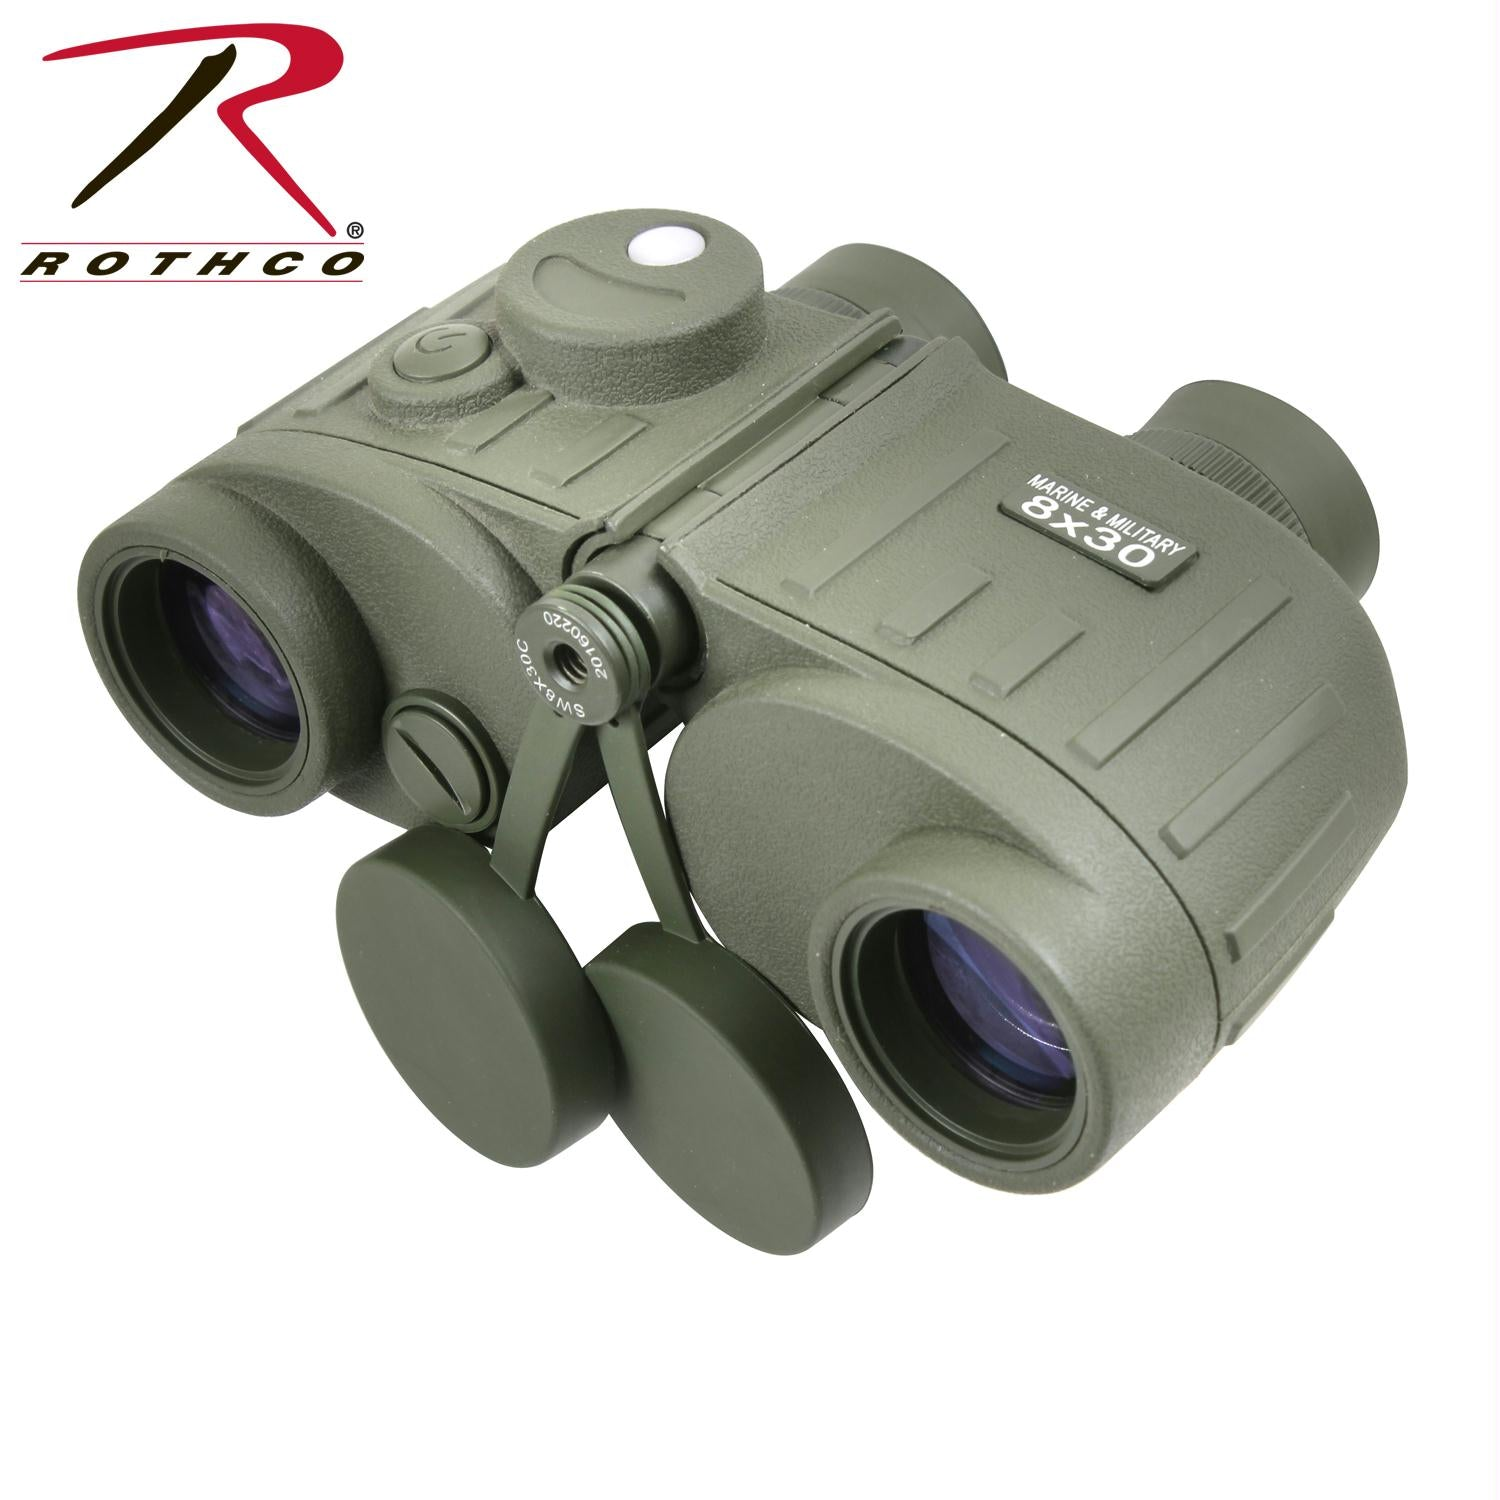 Rothco Military Style Tactical Binoculars 8 X 30 - Olive Drab